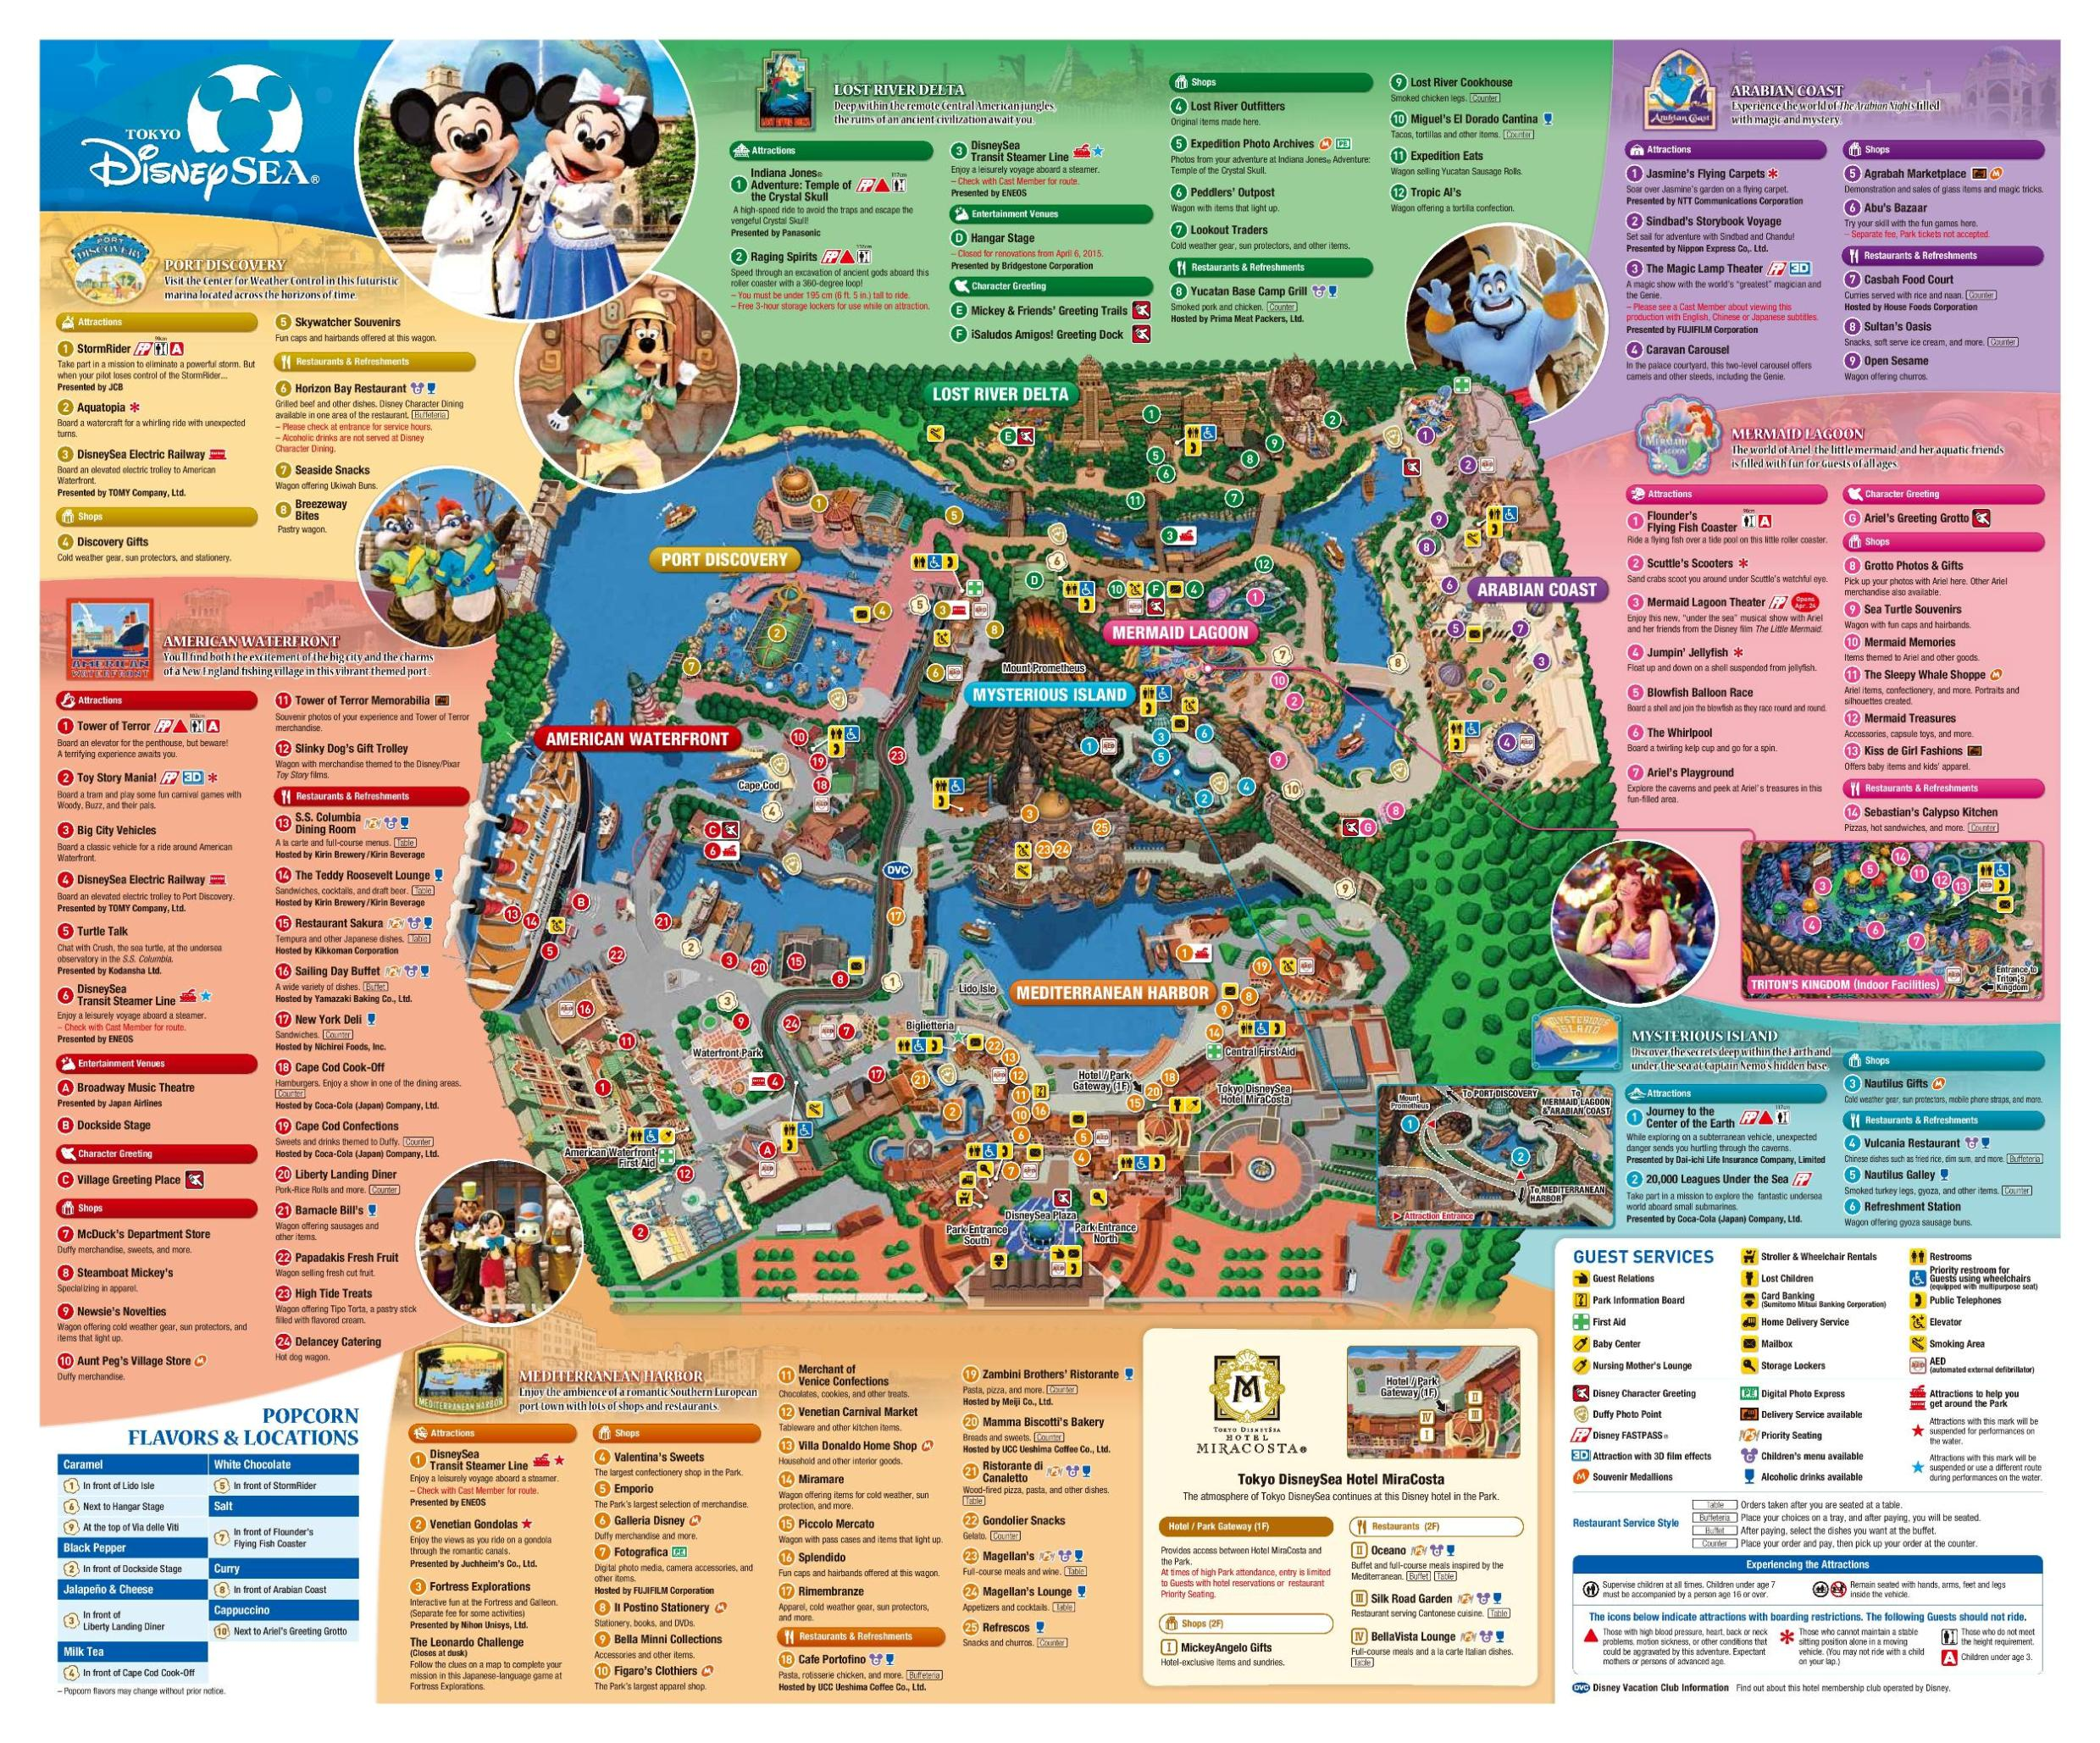 Is tokyo disneysea the worlds best theme park part 1 coaster101 tokyo disneysea map gumiabroncs Choice Image